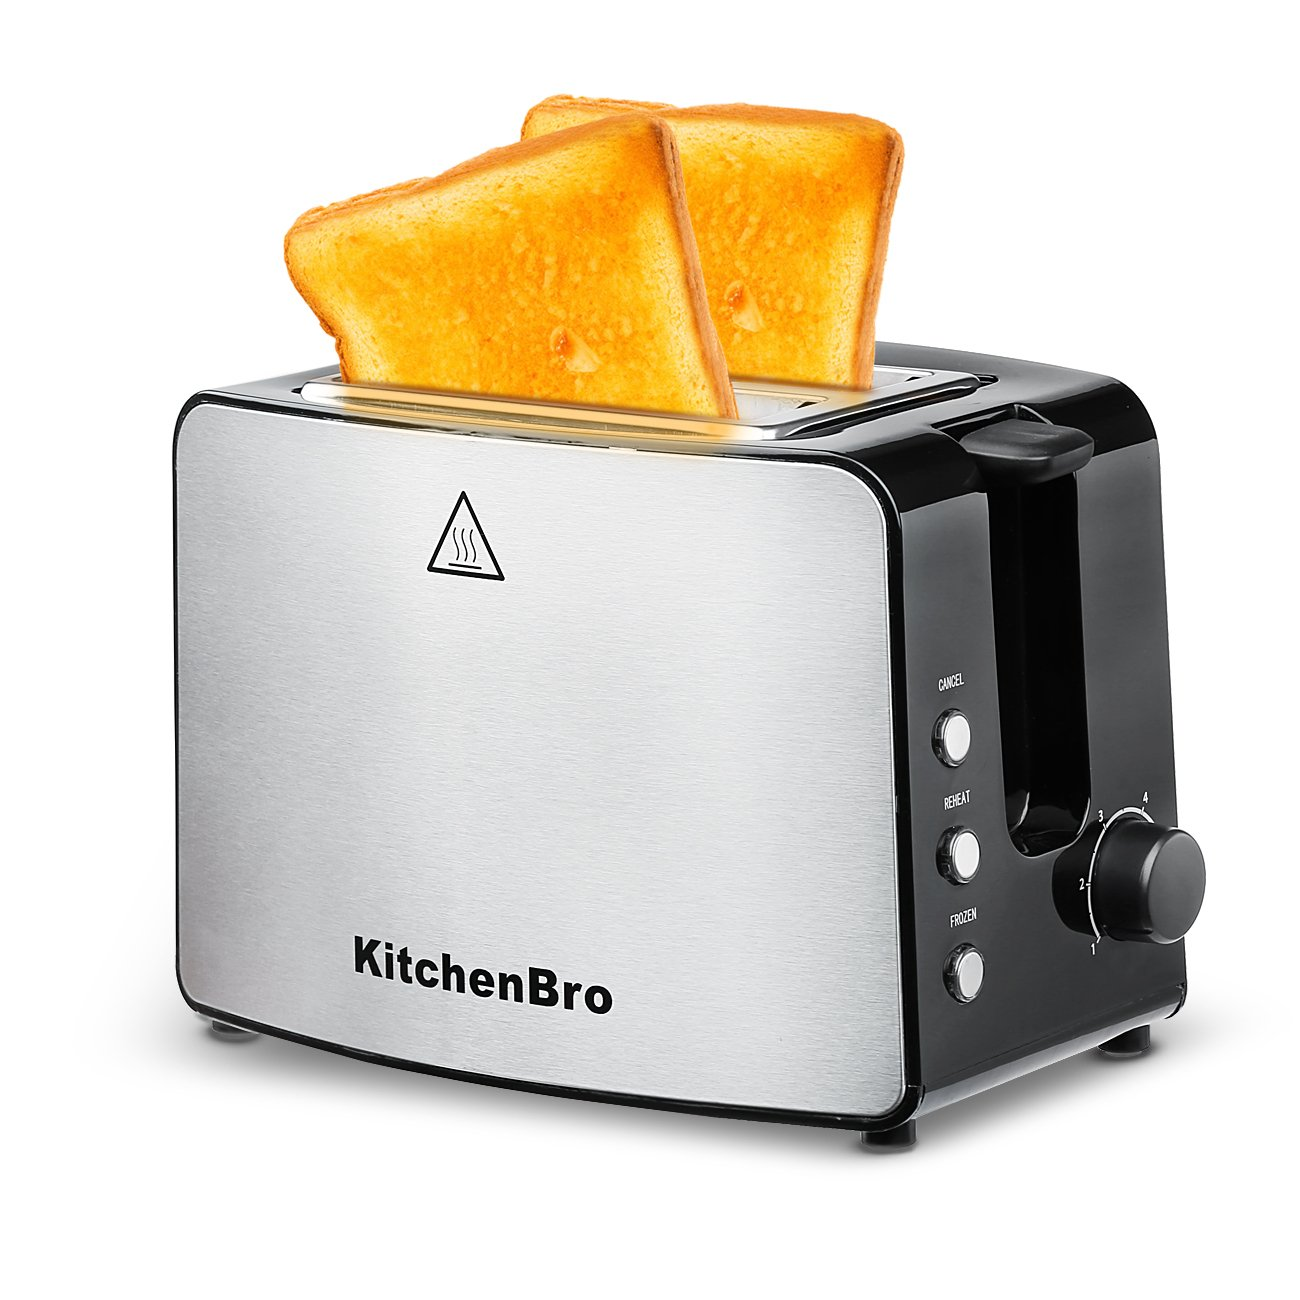 Toaster 2 Slice,Extra Wide Slots,Compact Stainless Steel,KitchenBro